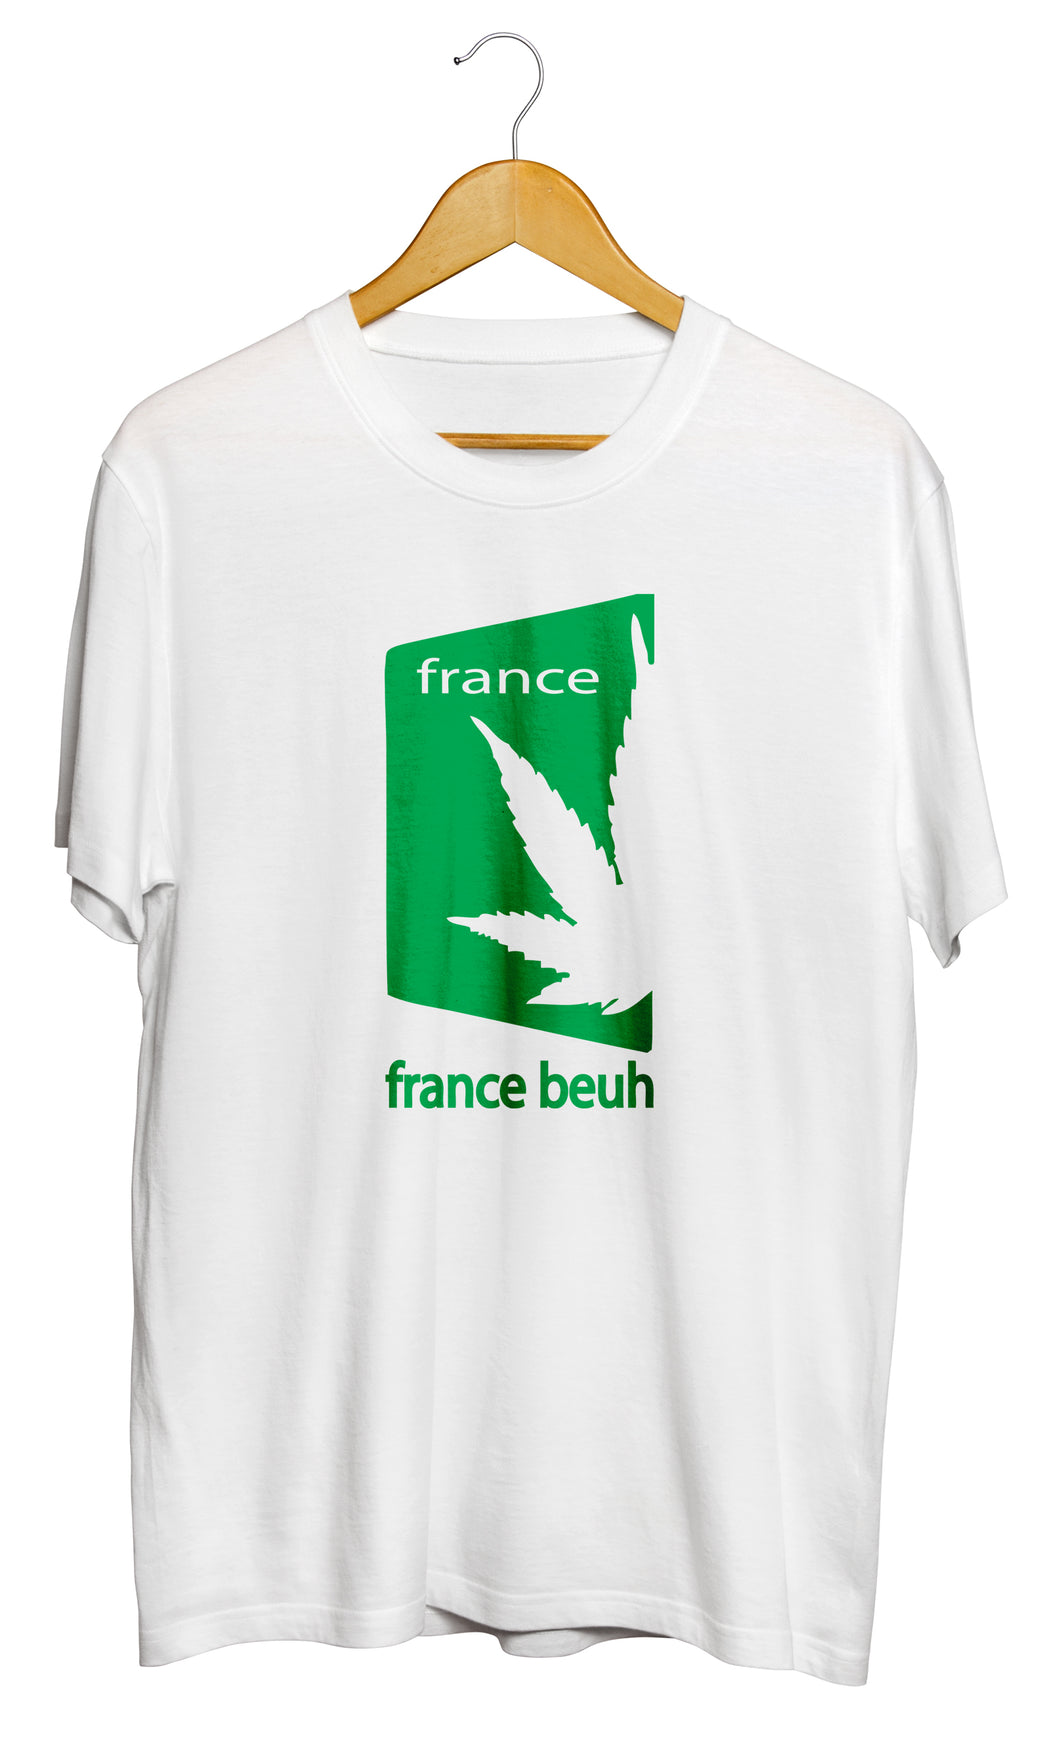 T-shirt humour france beuh cannabis chanvre cbd So custom